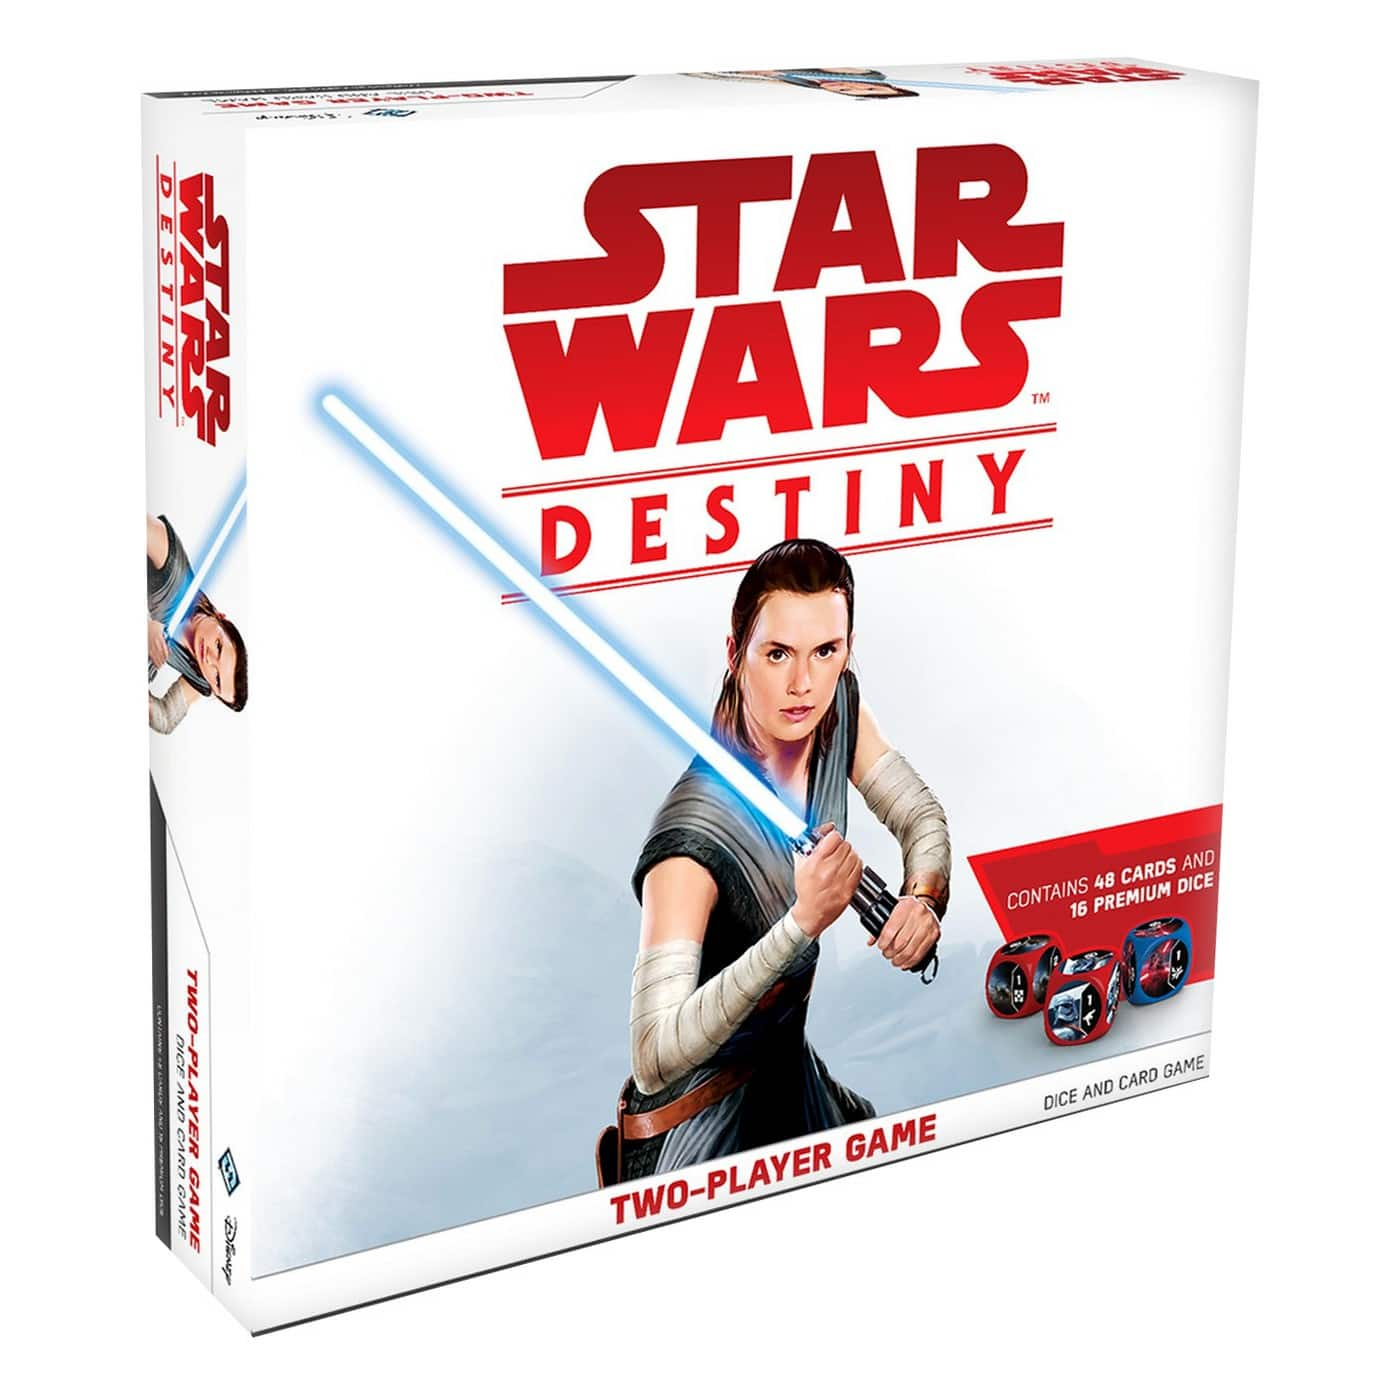 Star Wars Destiny Two-Player Game (48 cards, 16 premium dice) on Clearance YMMV! $8.98